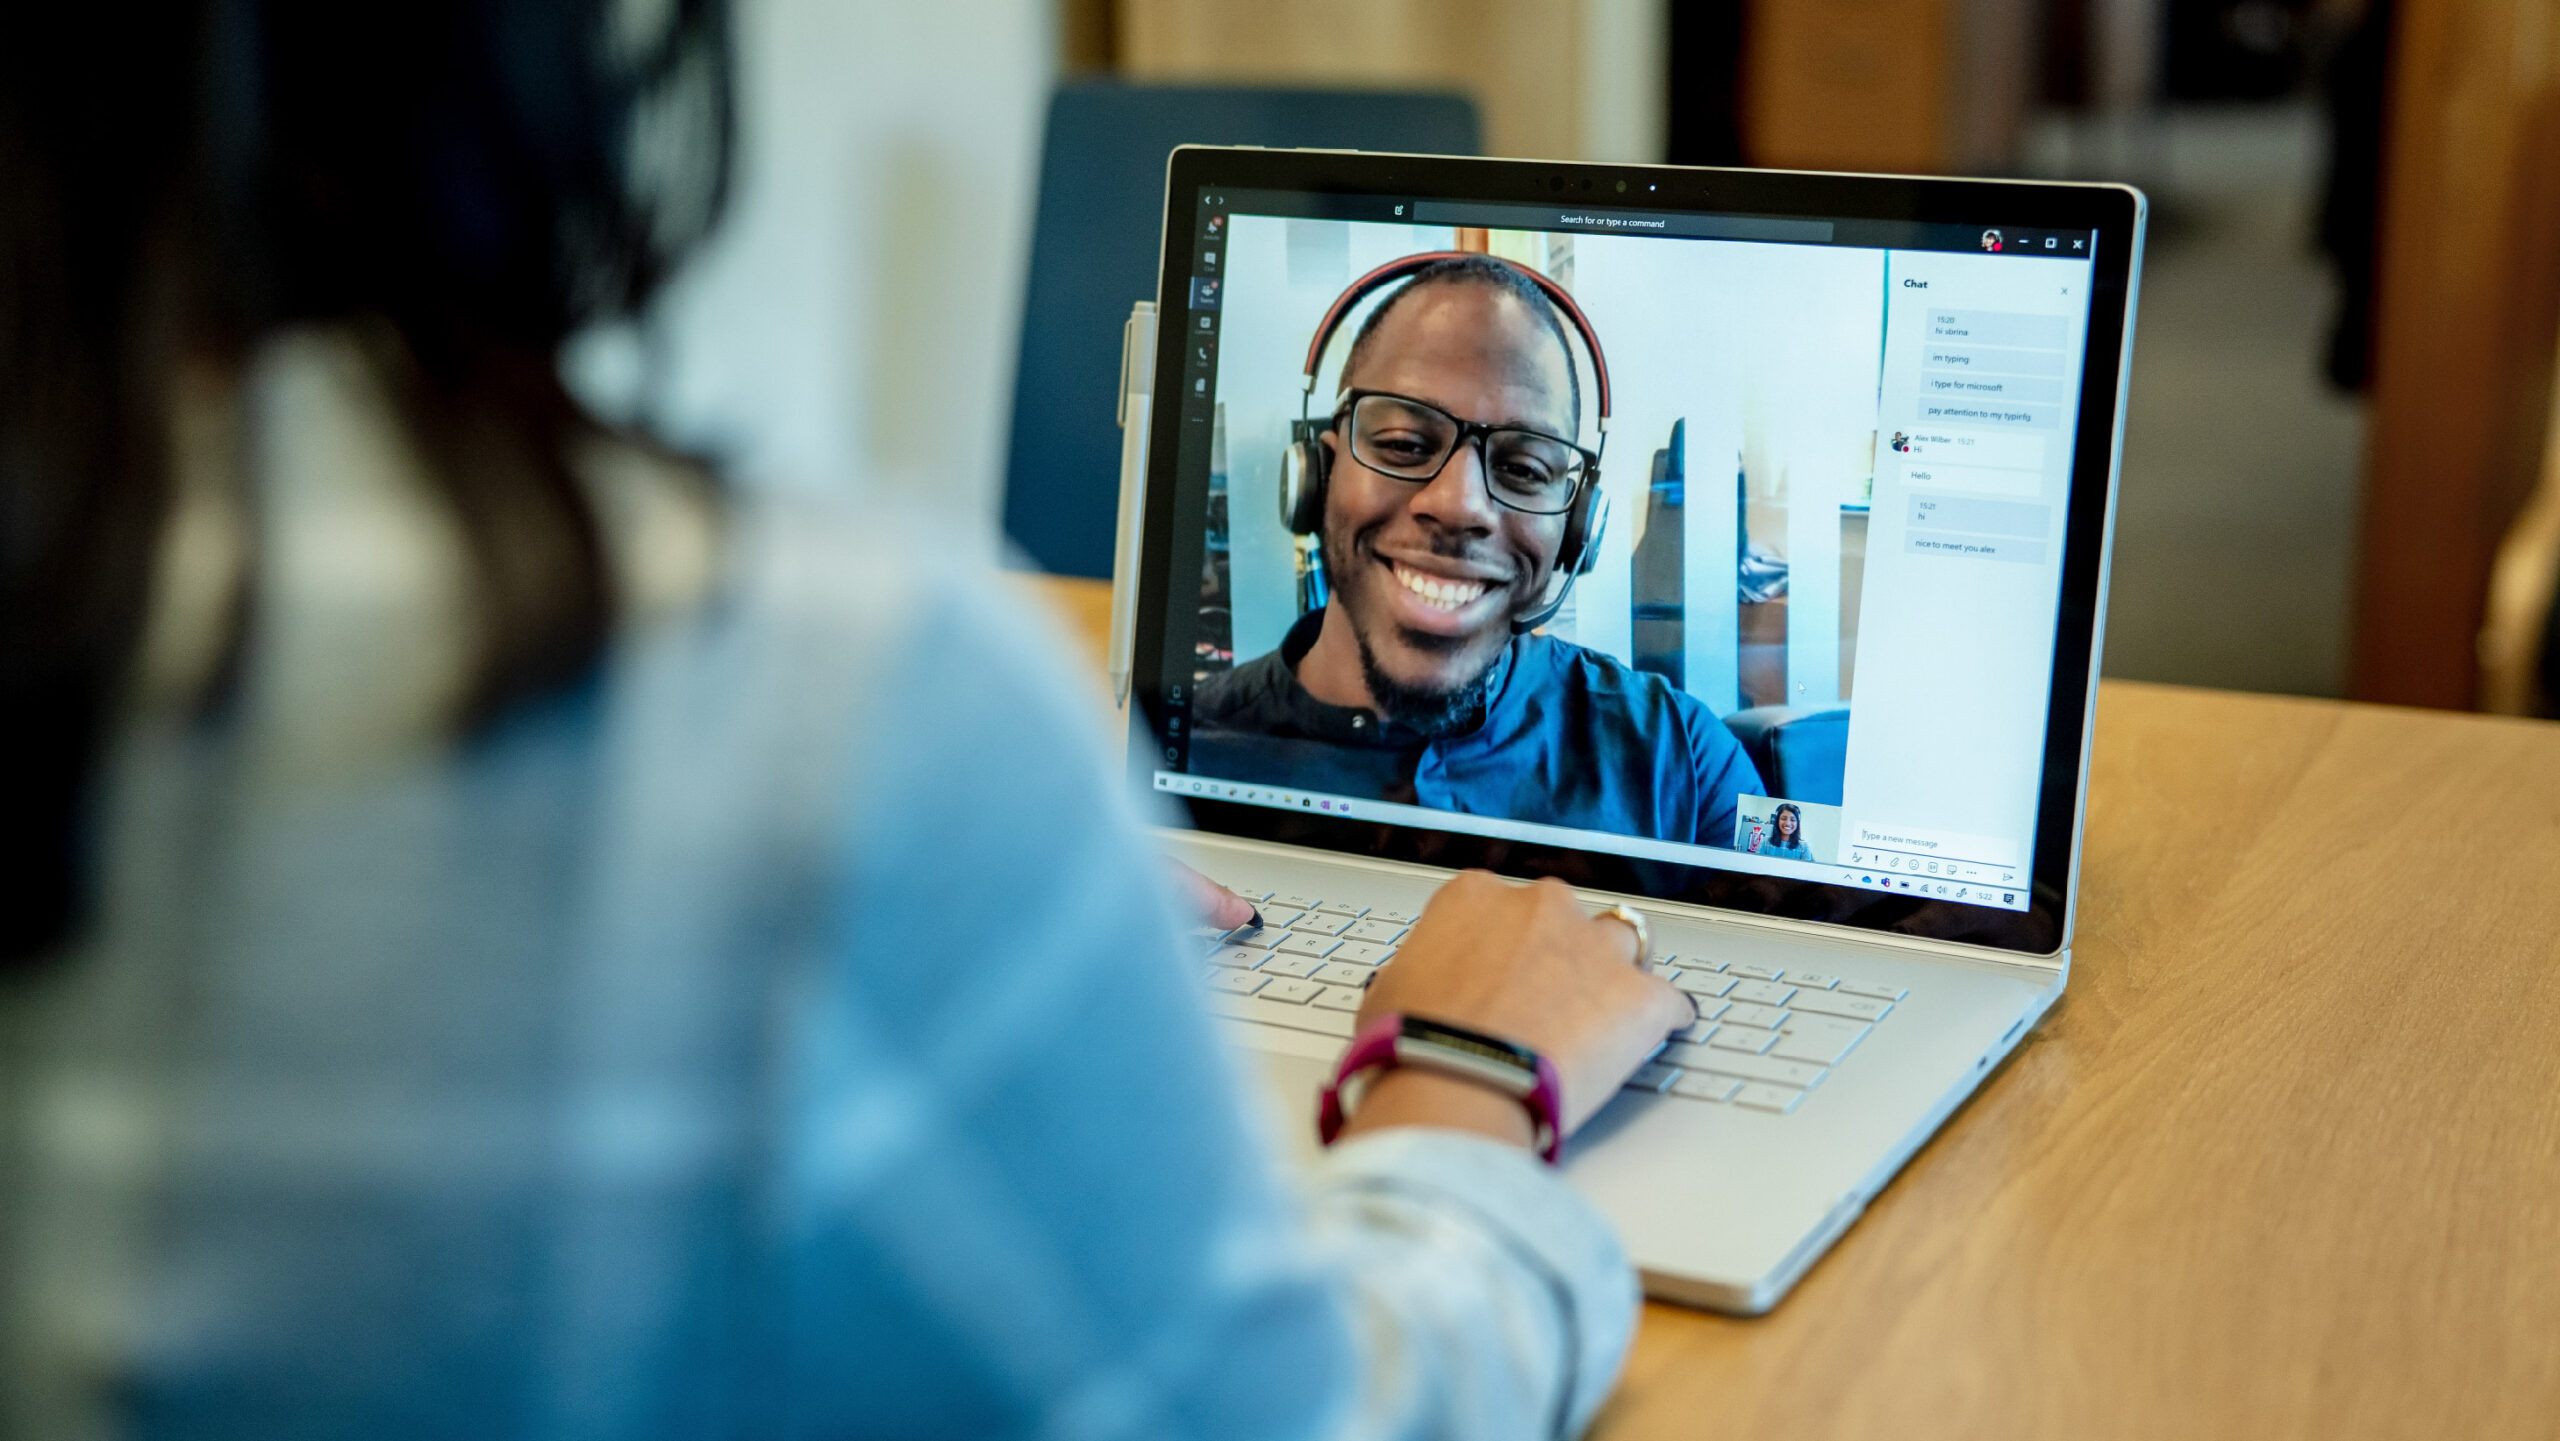 The rise of parallel chat in online meetings: how can we make the most of it?